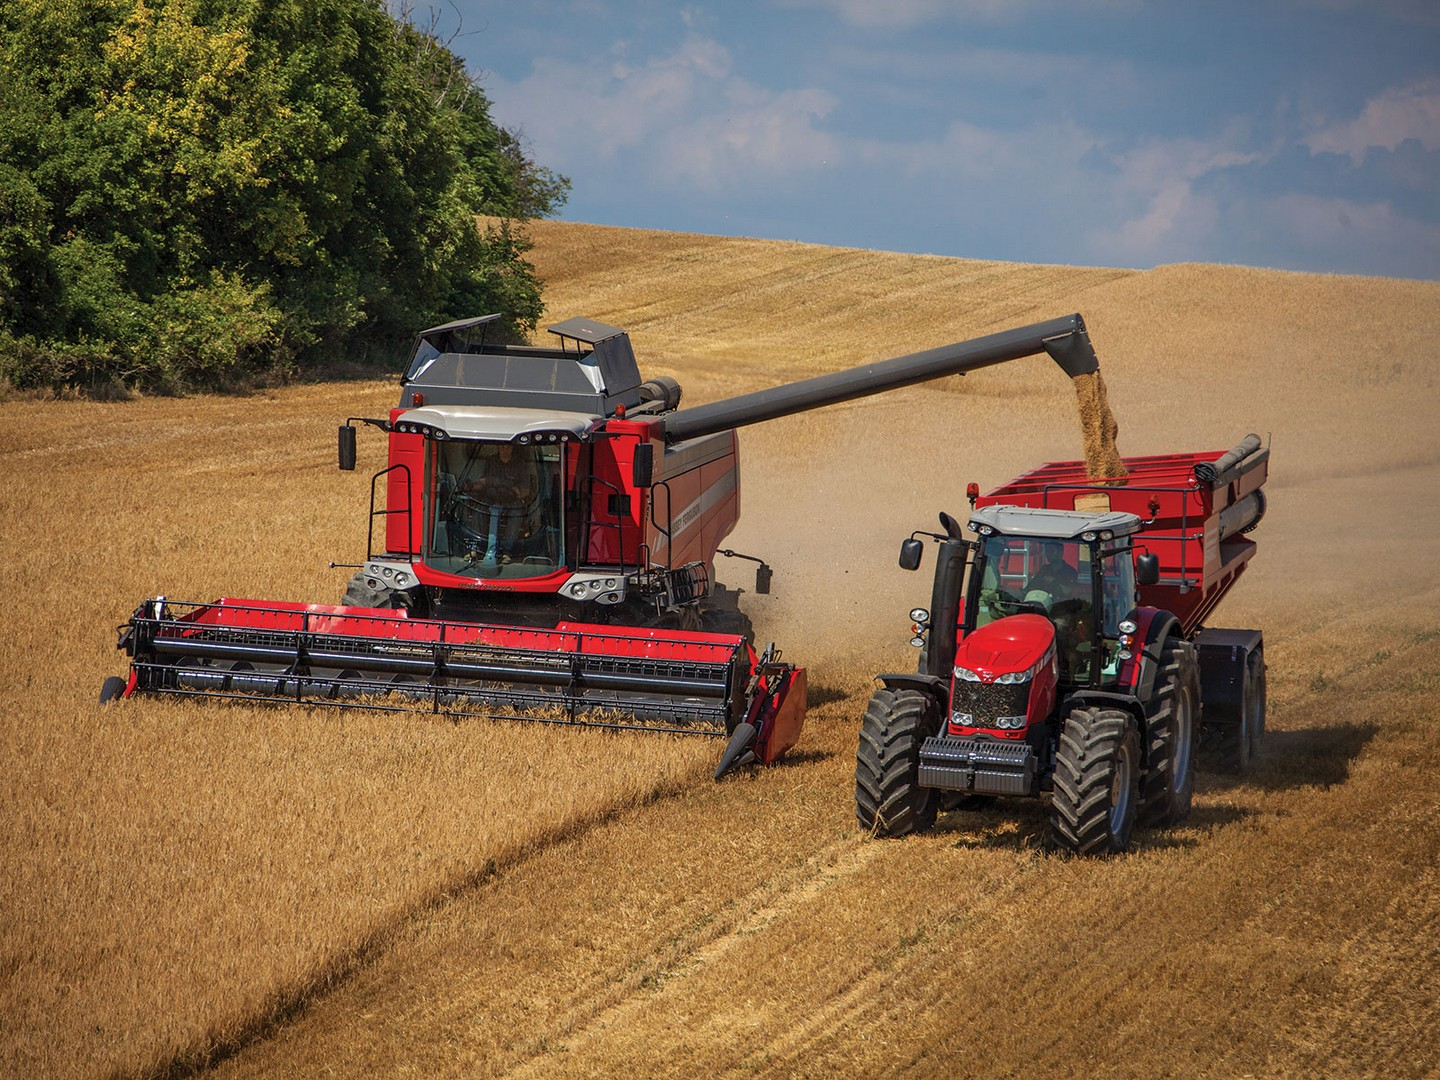 Massey Ferguson Combines : Machinery ownership alternatives for small farms